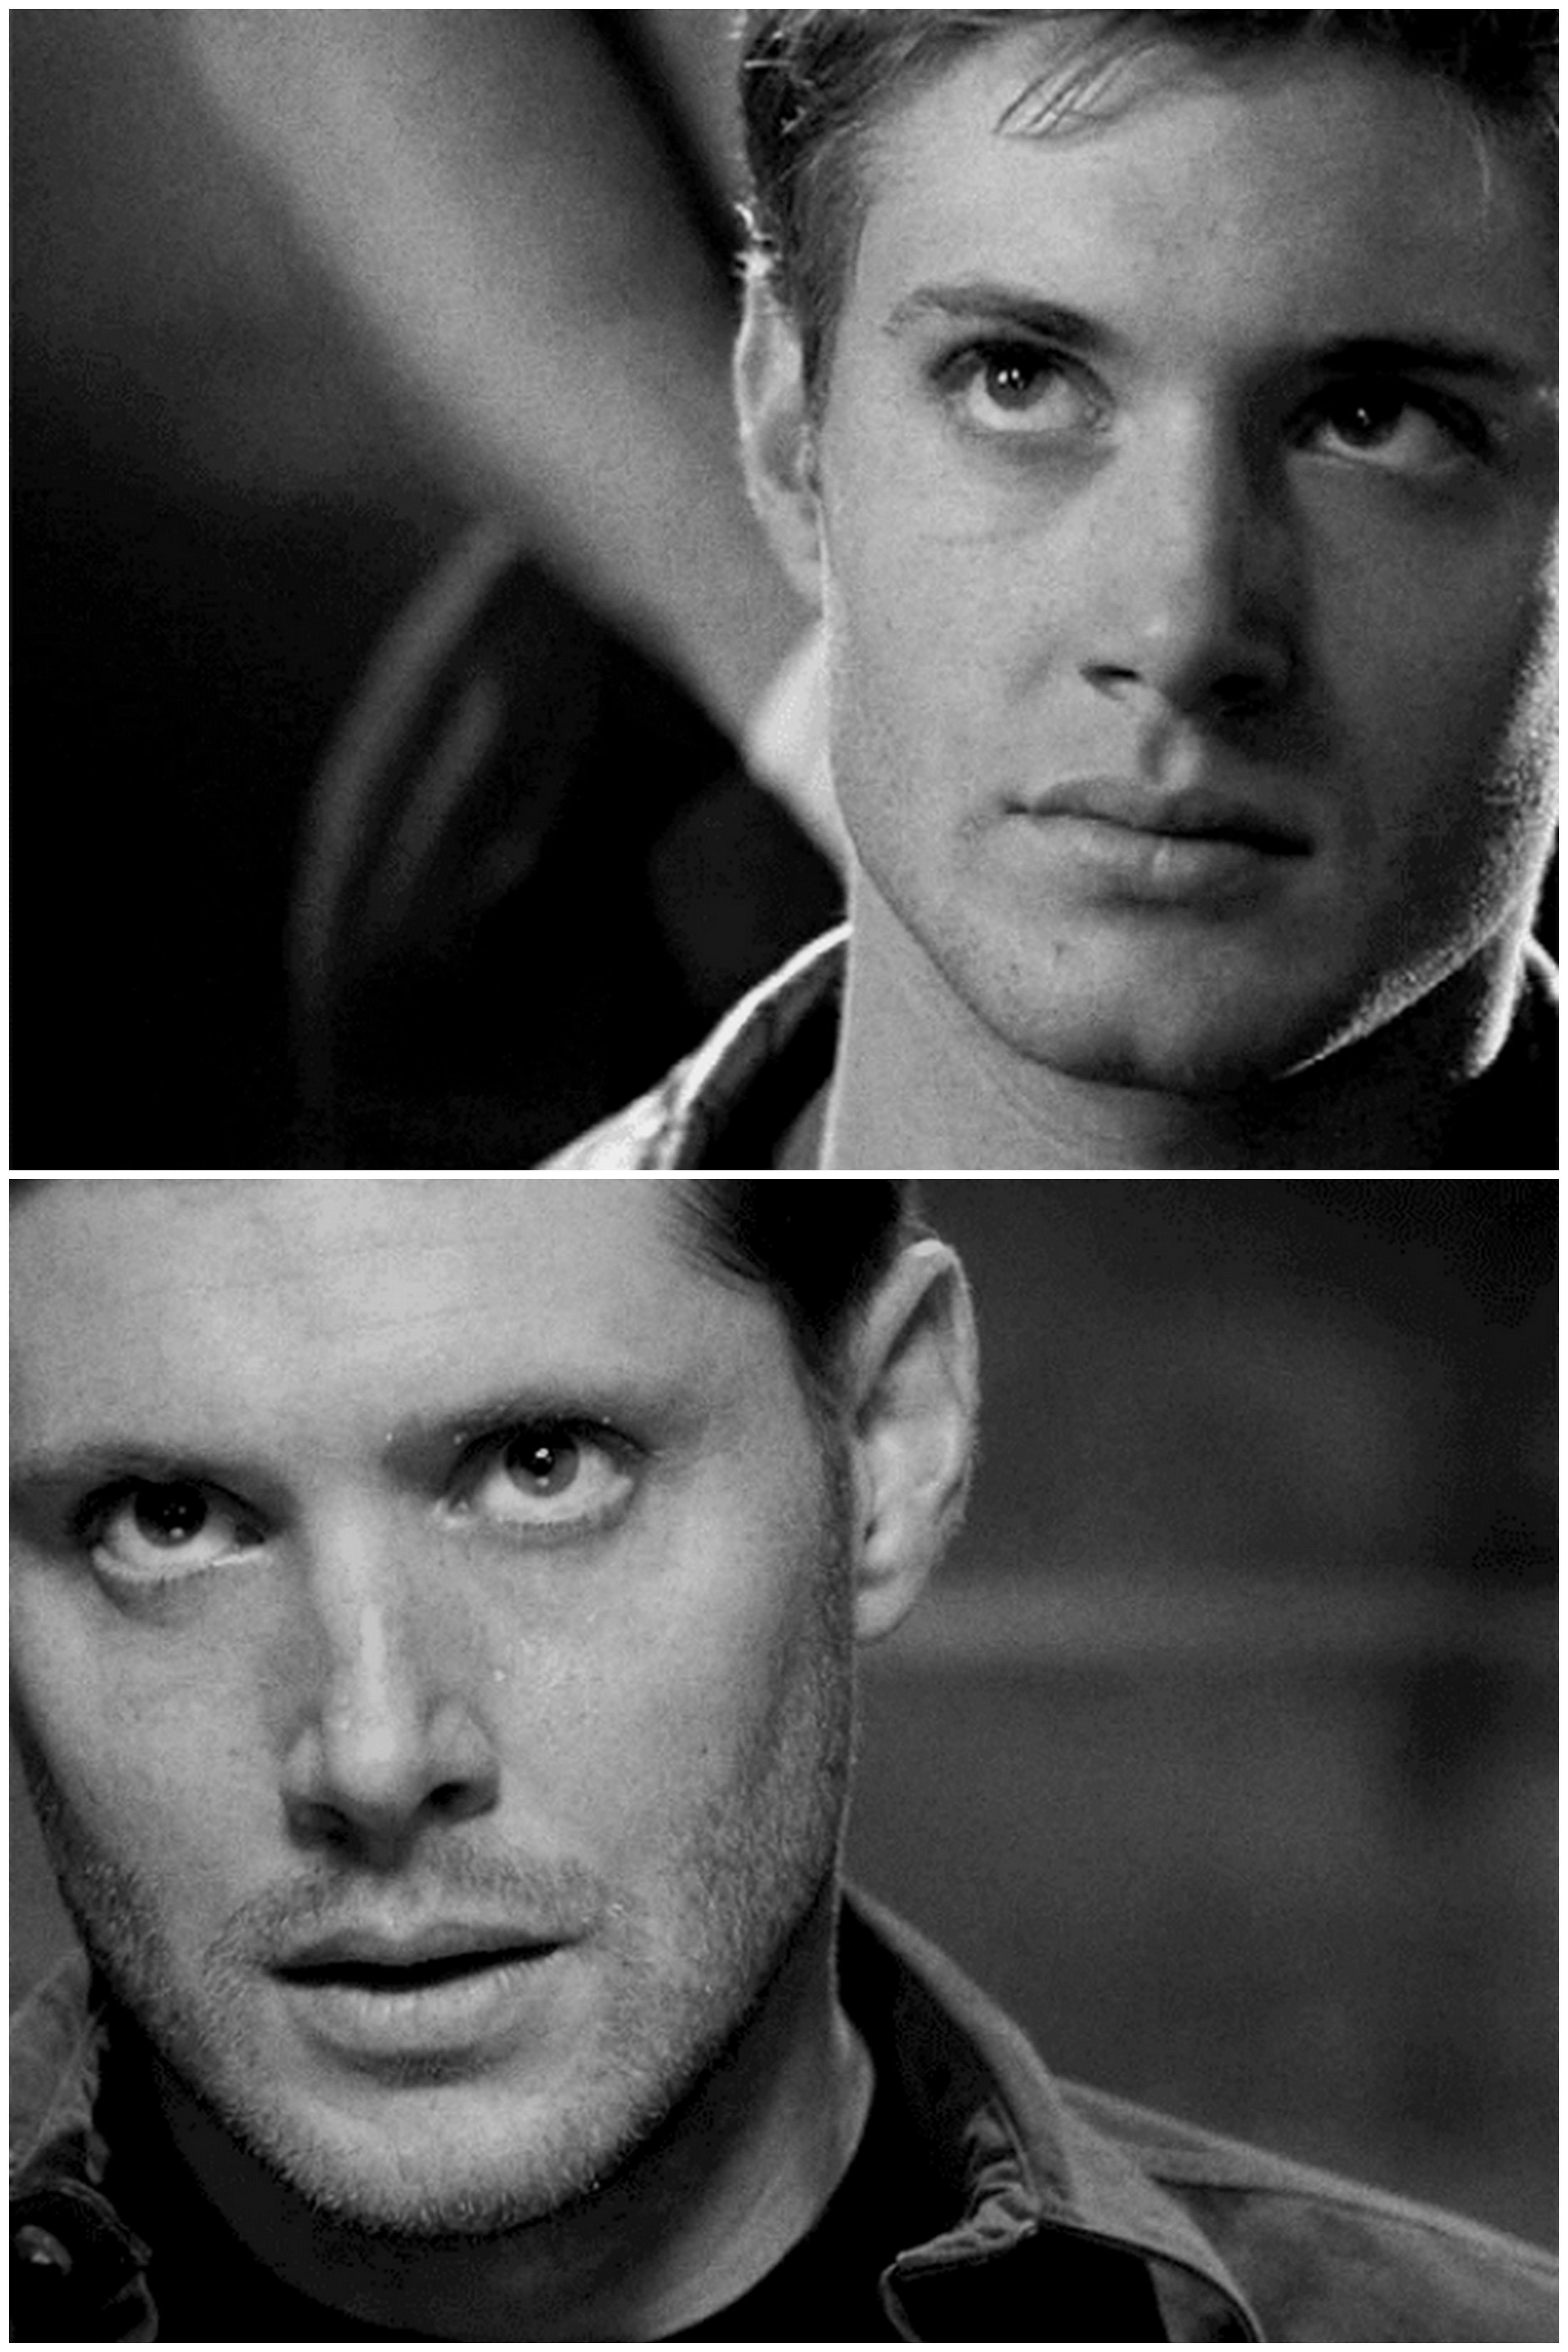 Jensen as Alec McDowell, Dark Angel, 2001 and as Dean Winchester, 2014 [gifset] omyfuckingod